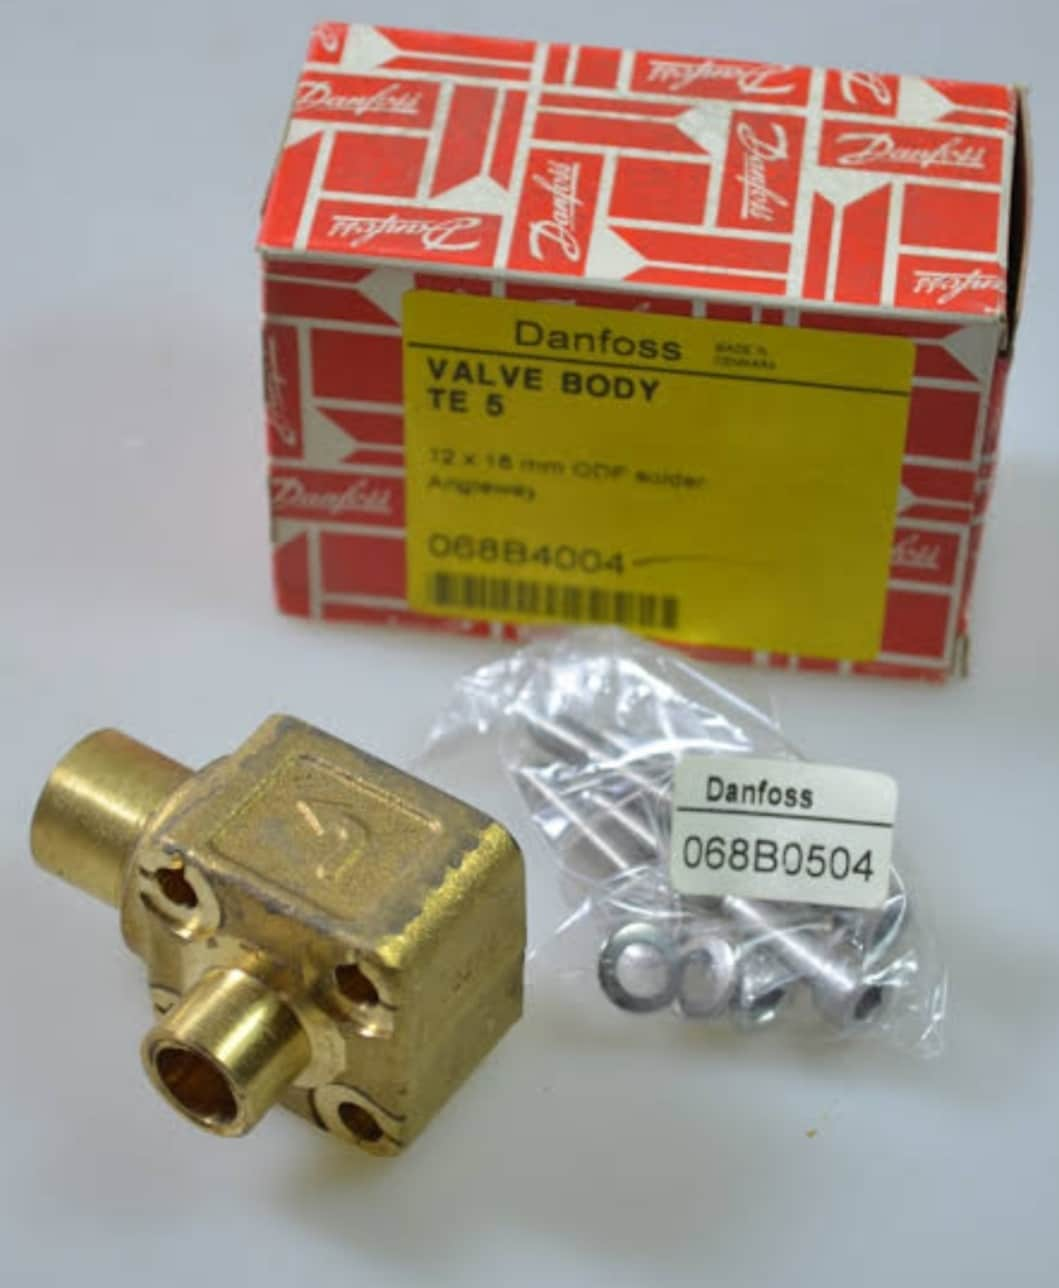 "DANFOSS TE 55 VALVE BODY (1 1/8""× 1 3/8"" SOLDER ANGLE CONNECTION)(067G4004)"